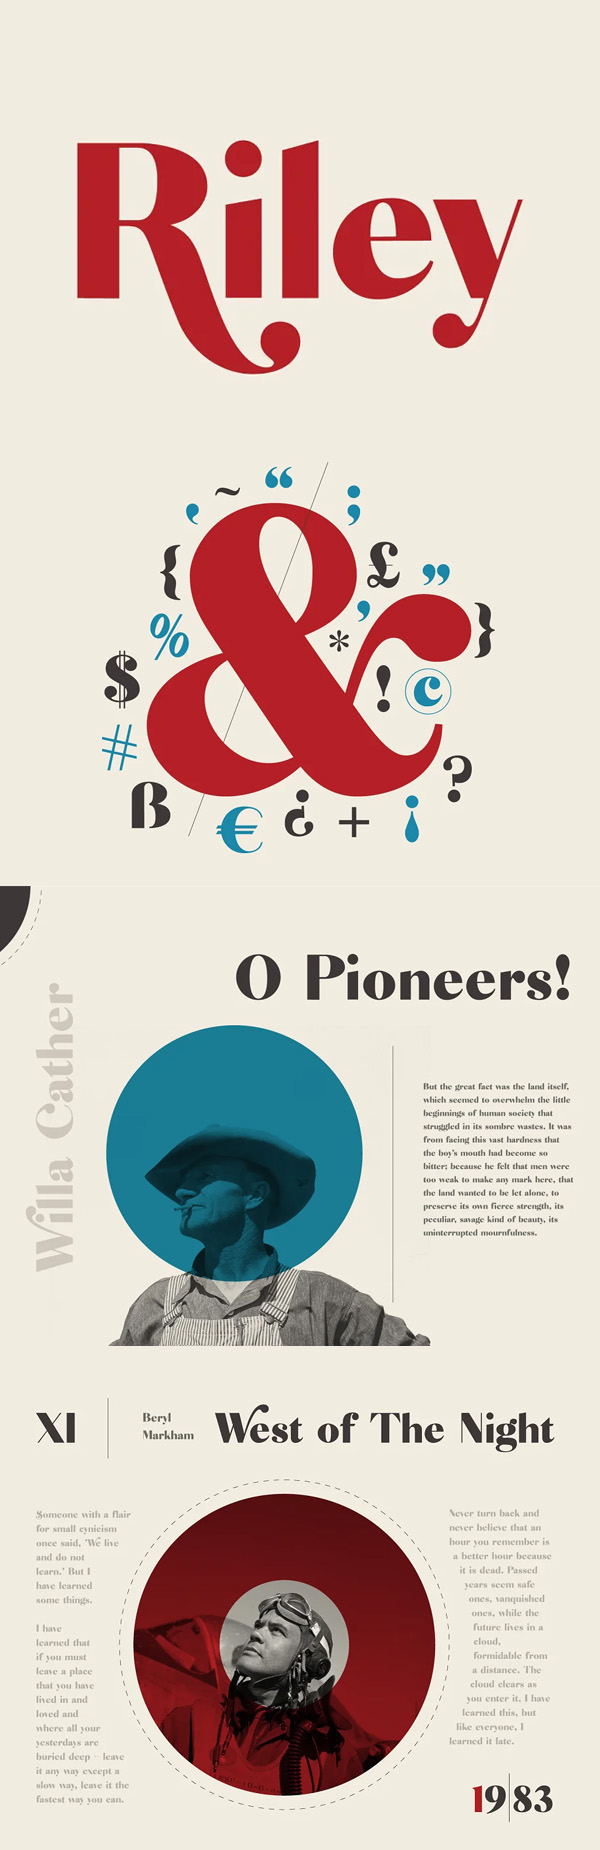 Riley - A Modern Typeface Free Font